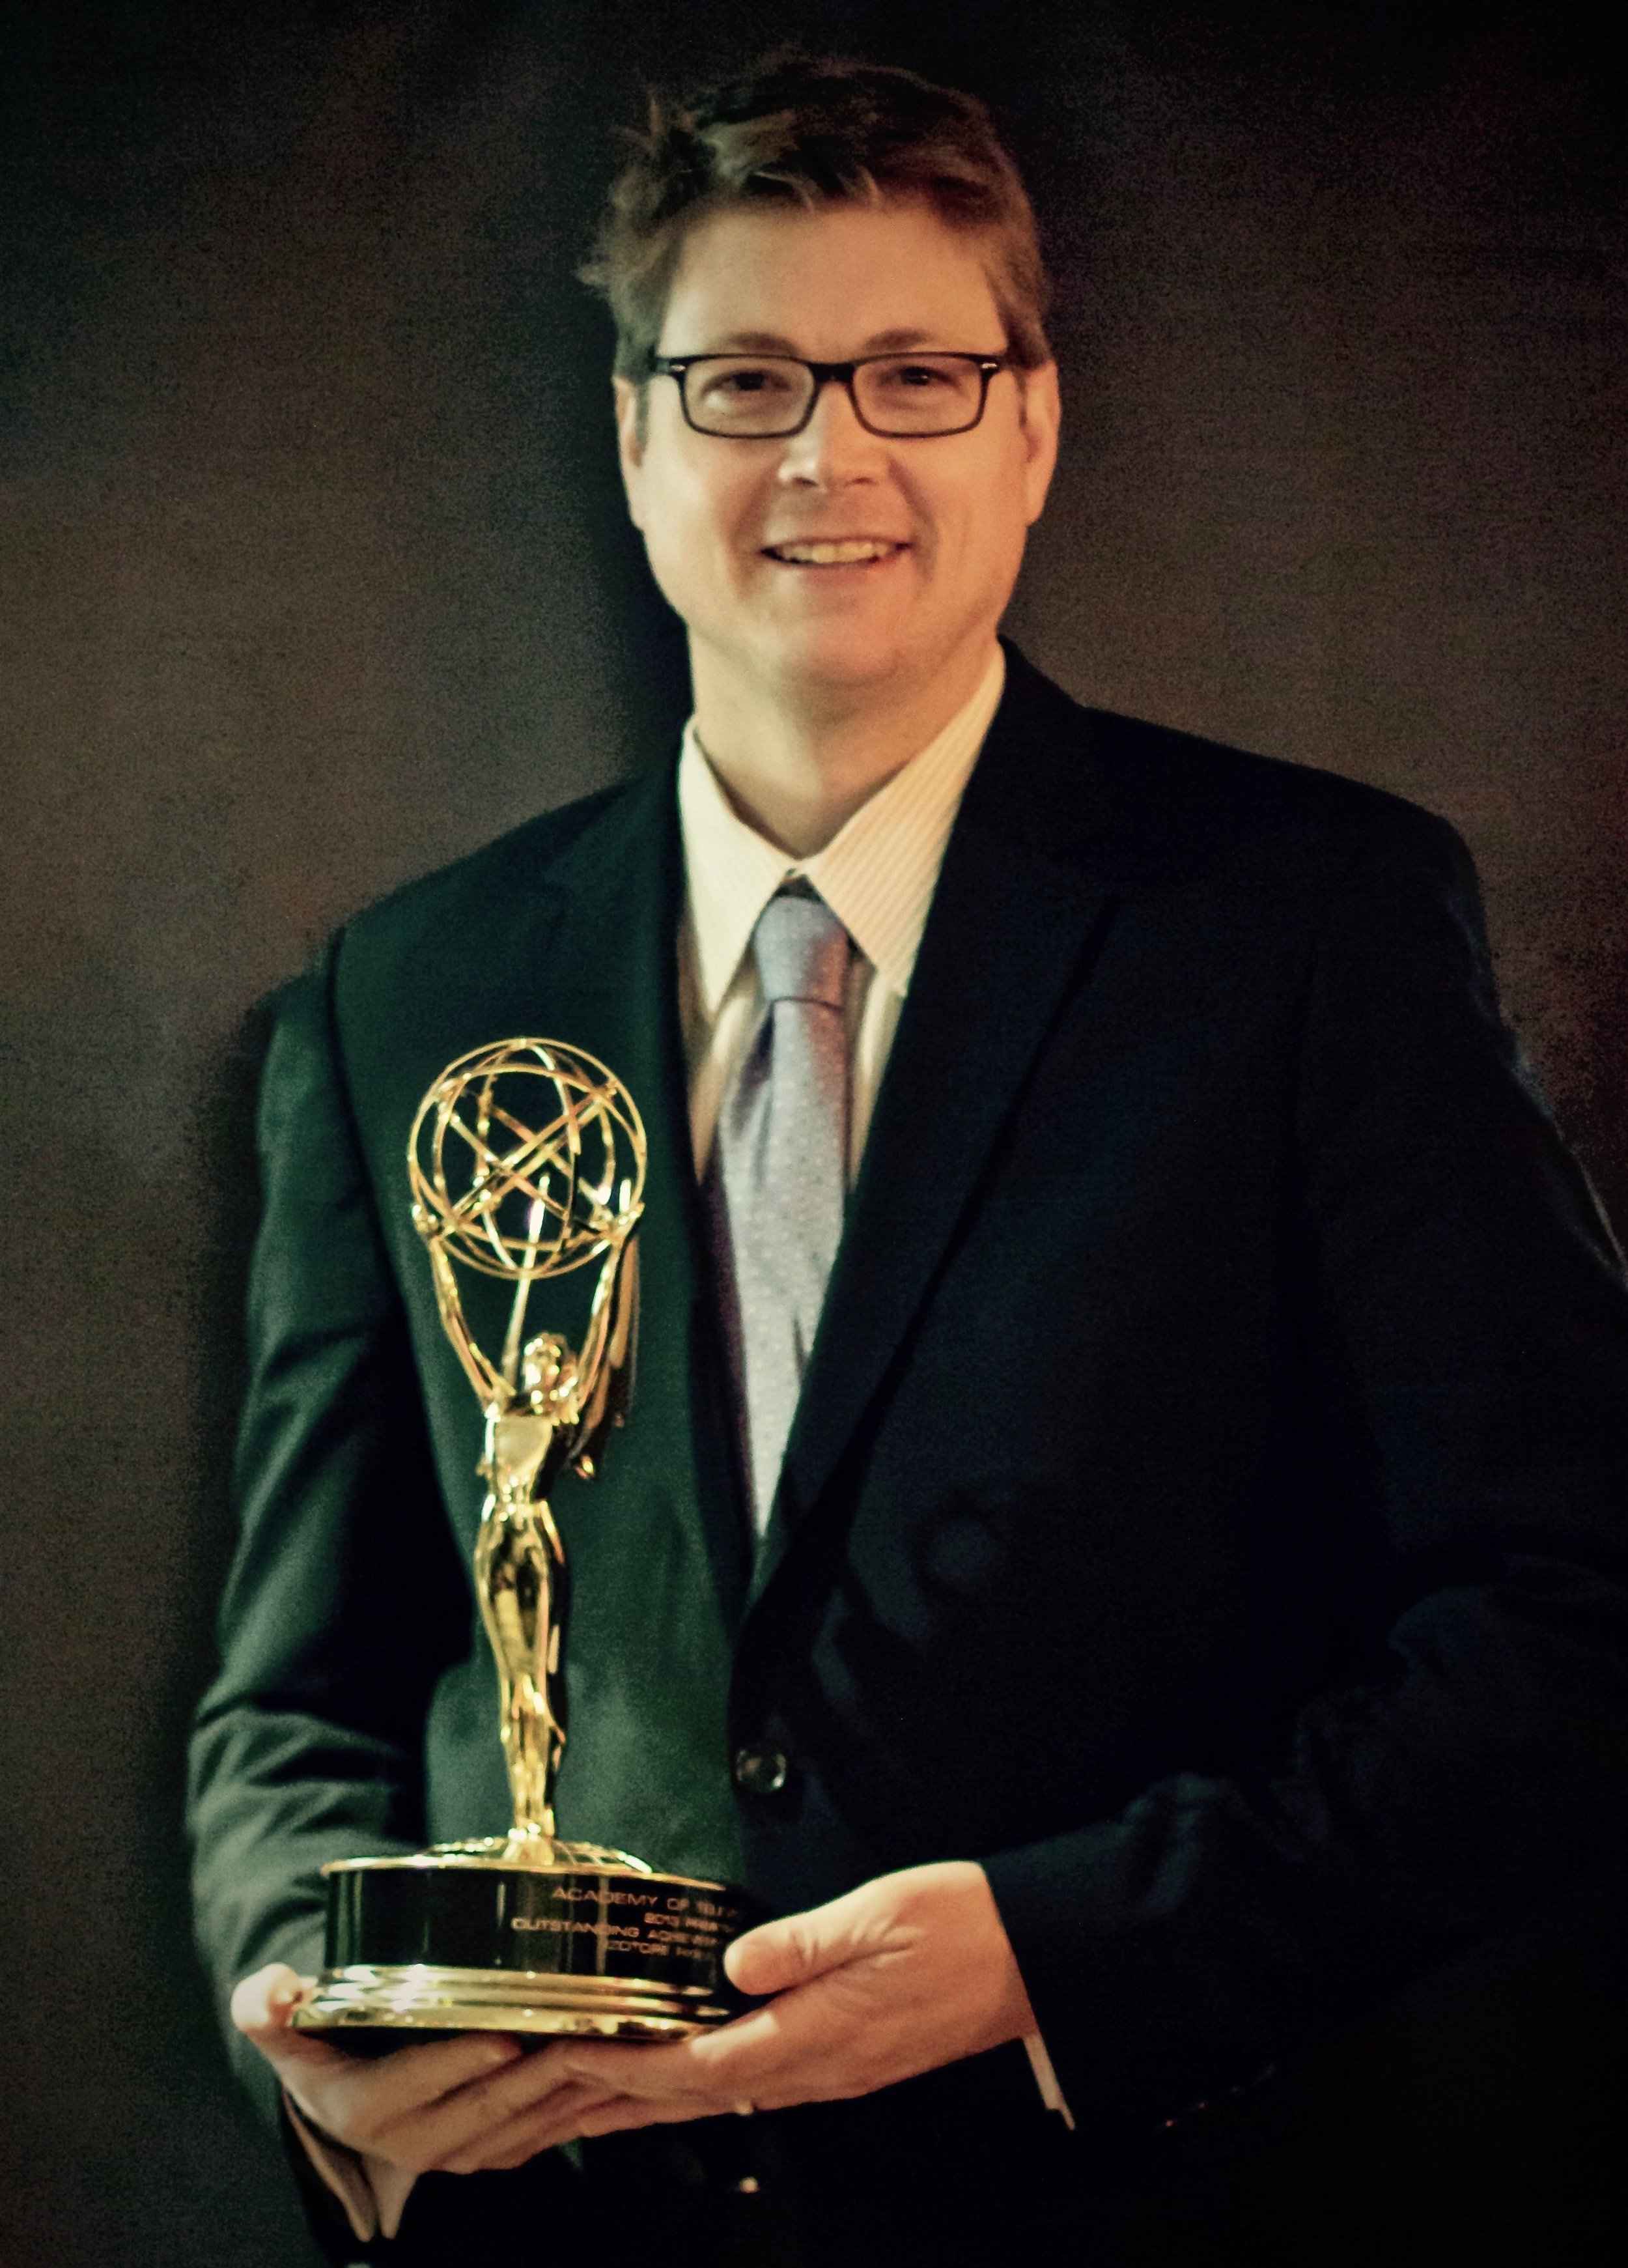 iZotope's Emmy Award in 2013